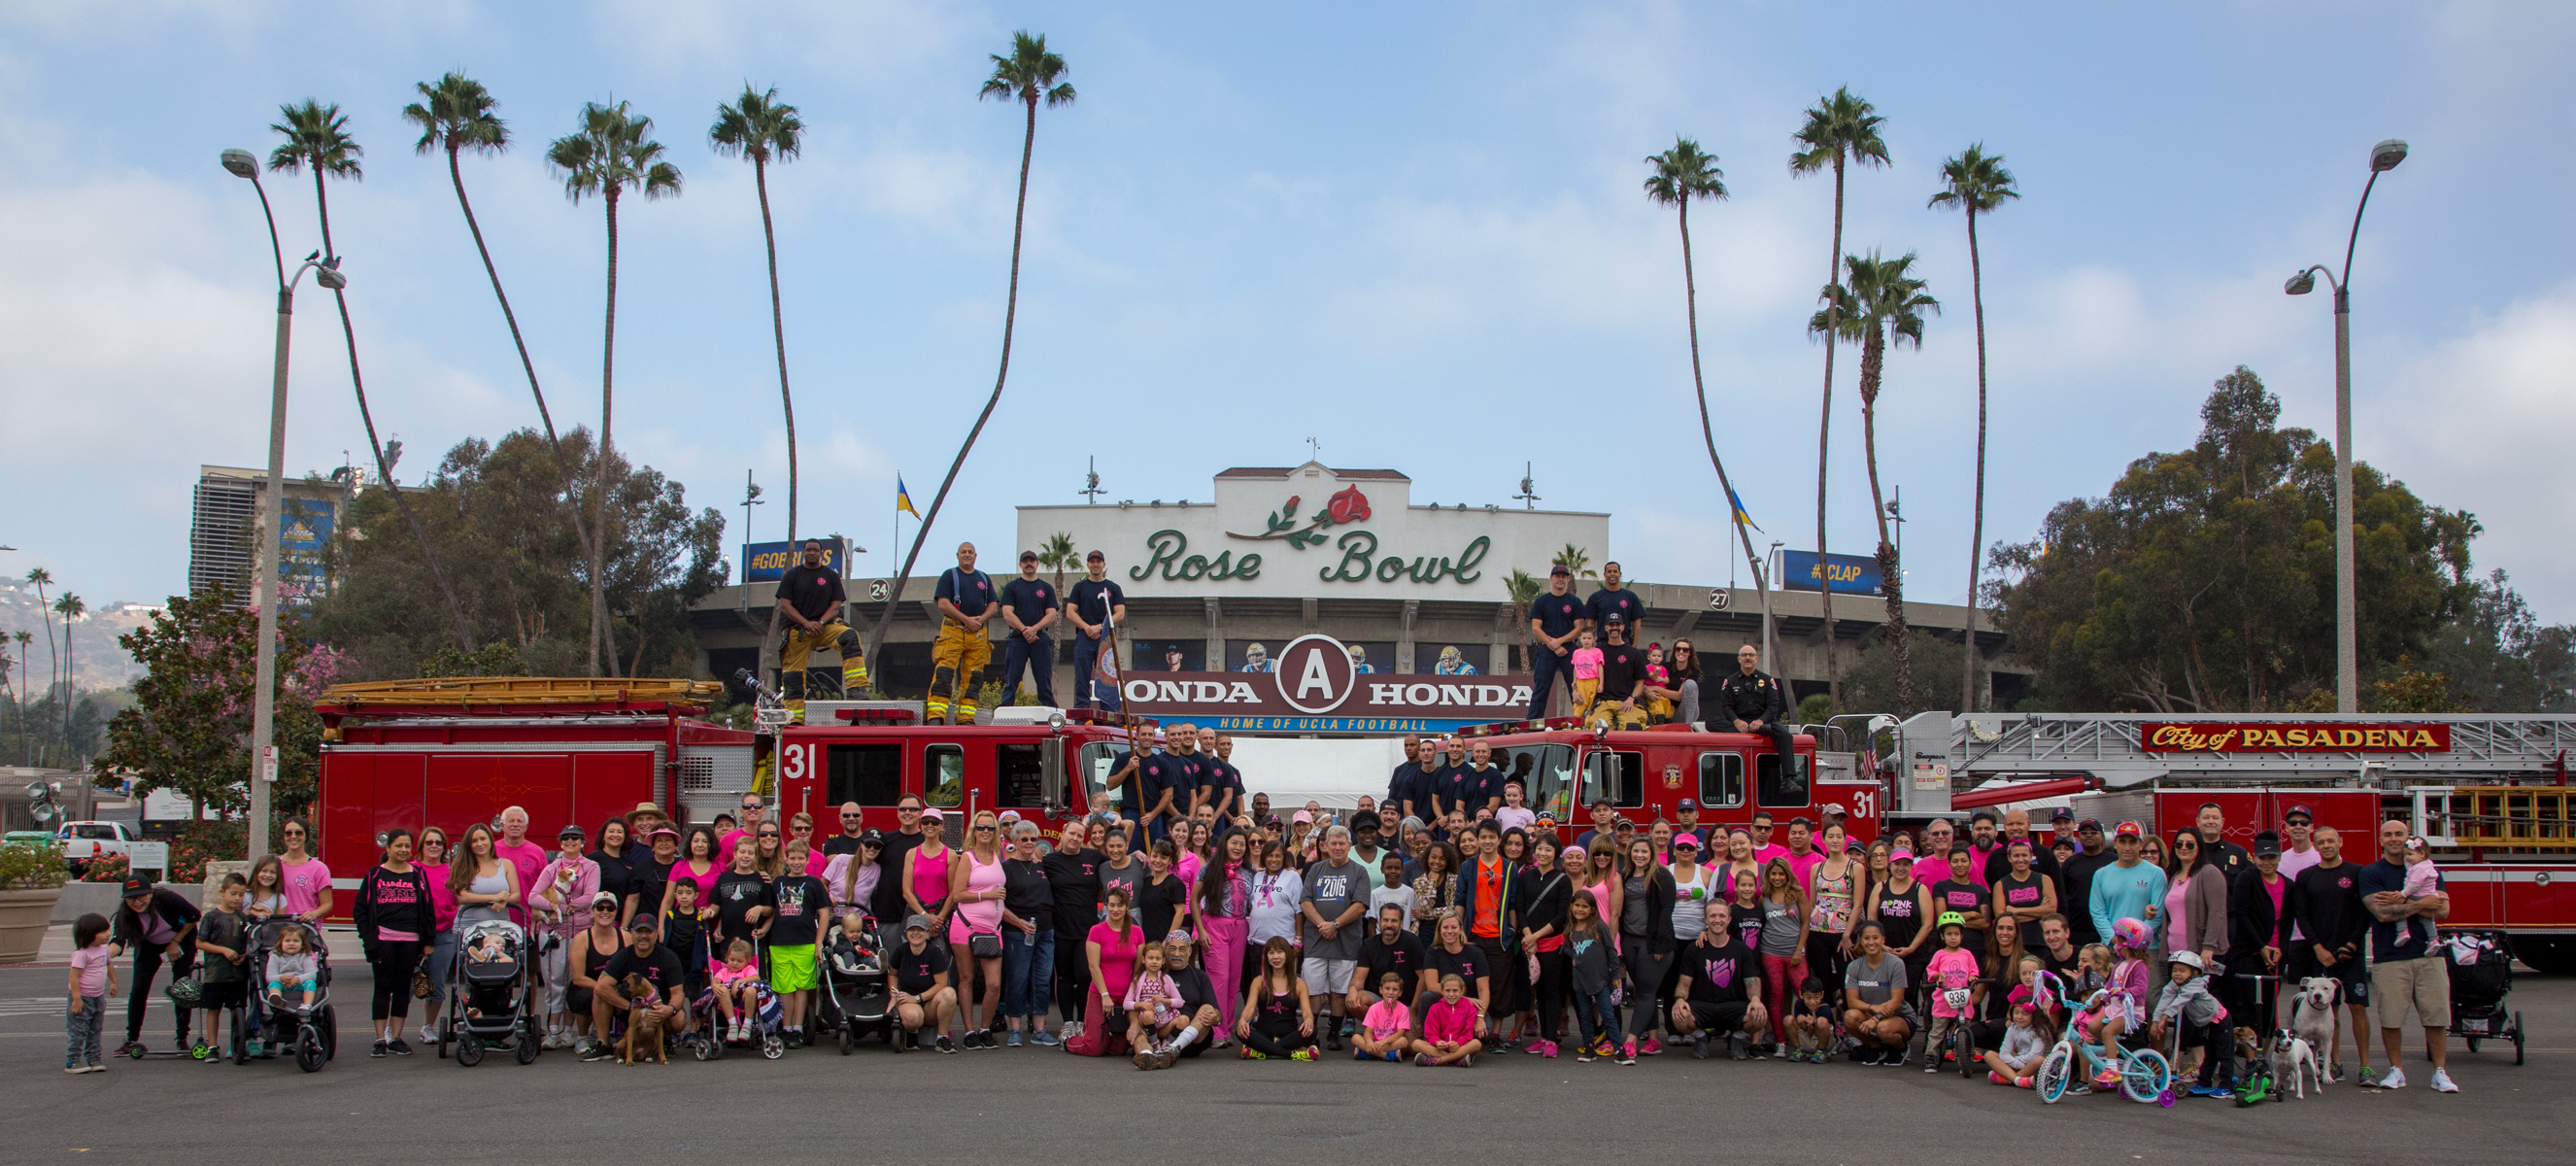 Pasadena Fire Department Goes Pink Event 10-02-2016